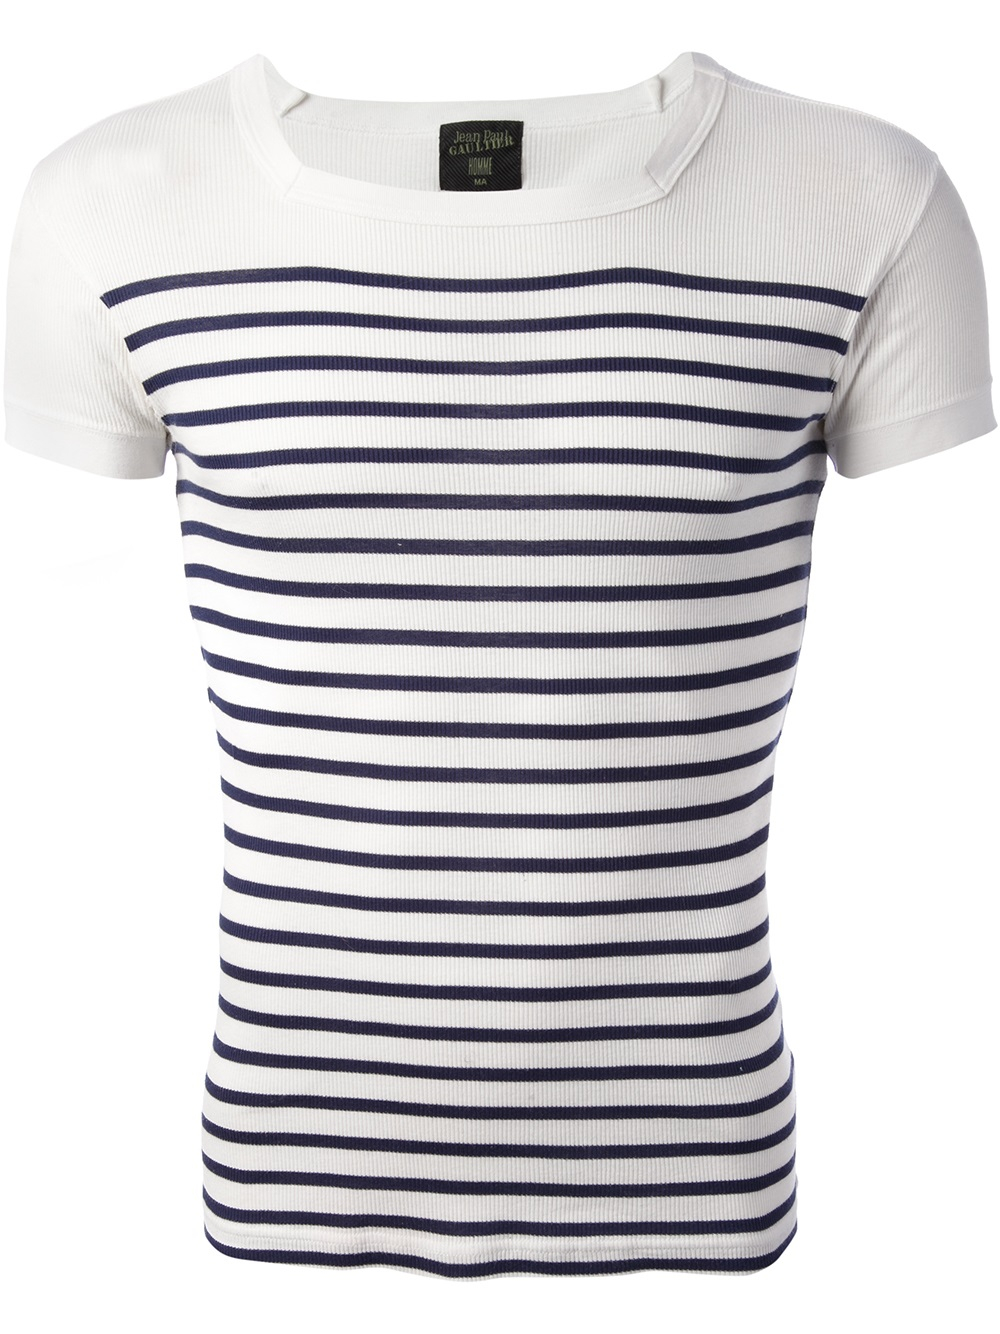 jean paul gaultier matelot tshirt in blue for men lyst